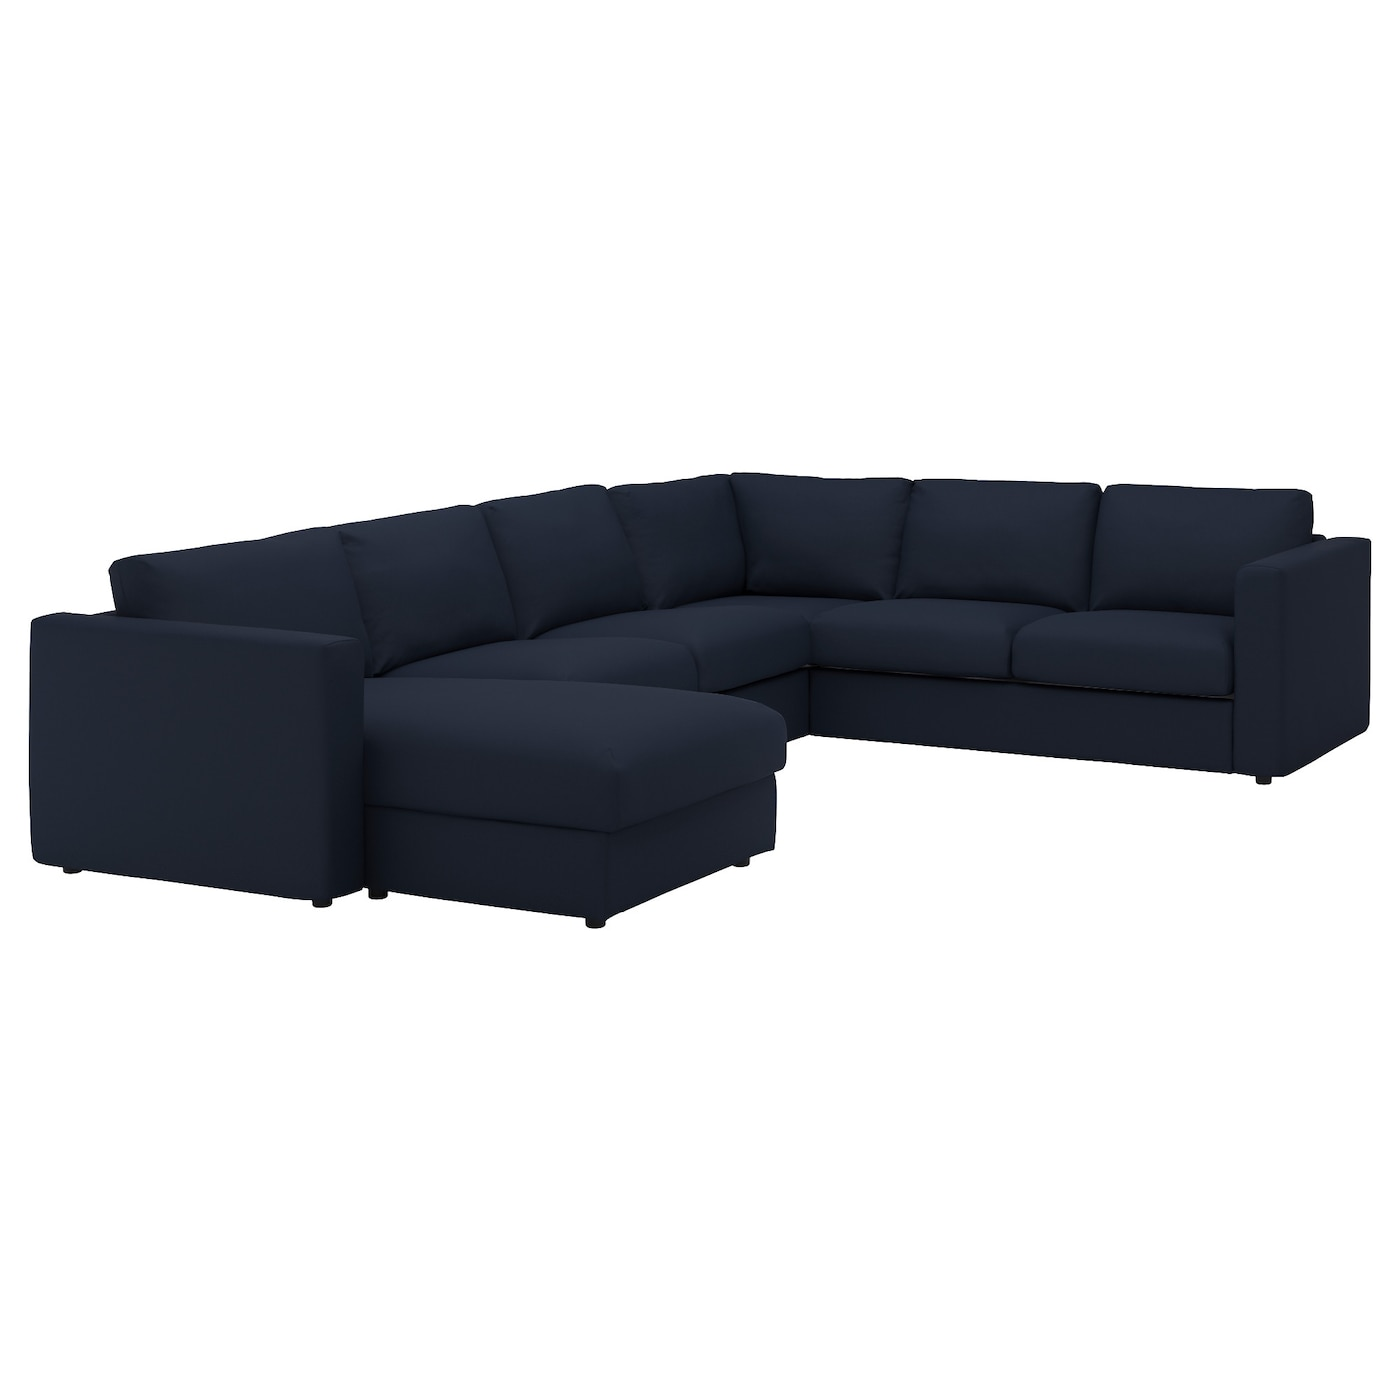 Vimle corner sofa 5 seat with chaise longue gr sbo black for Chaise longue sofa